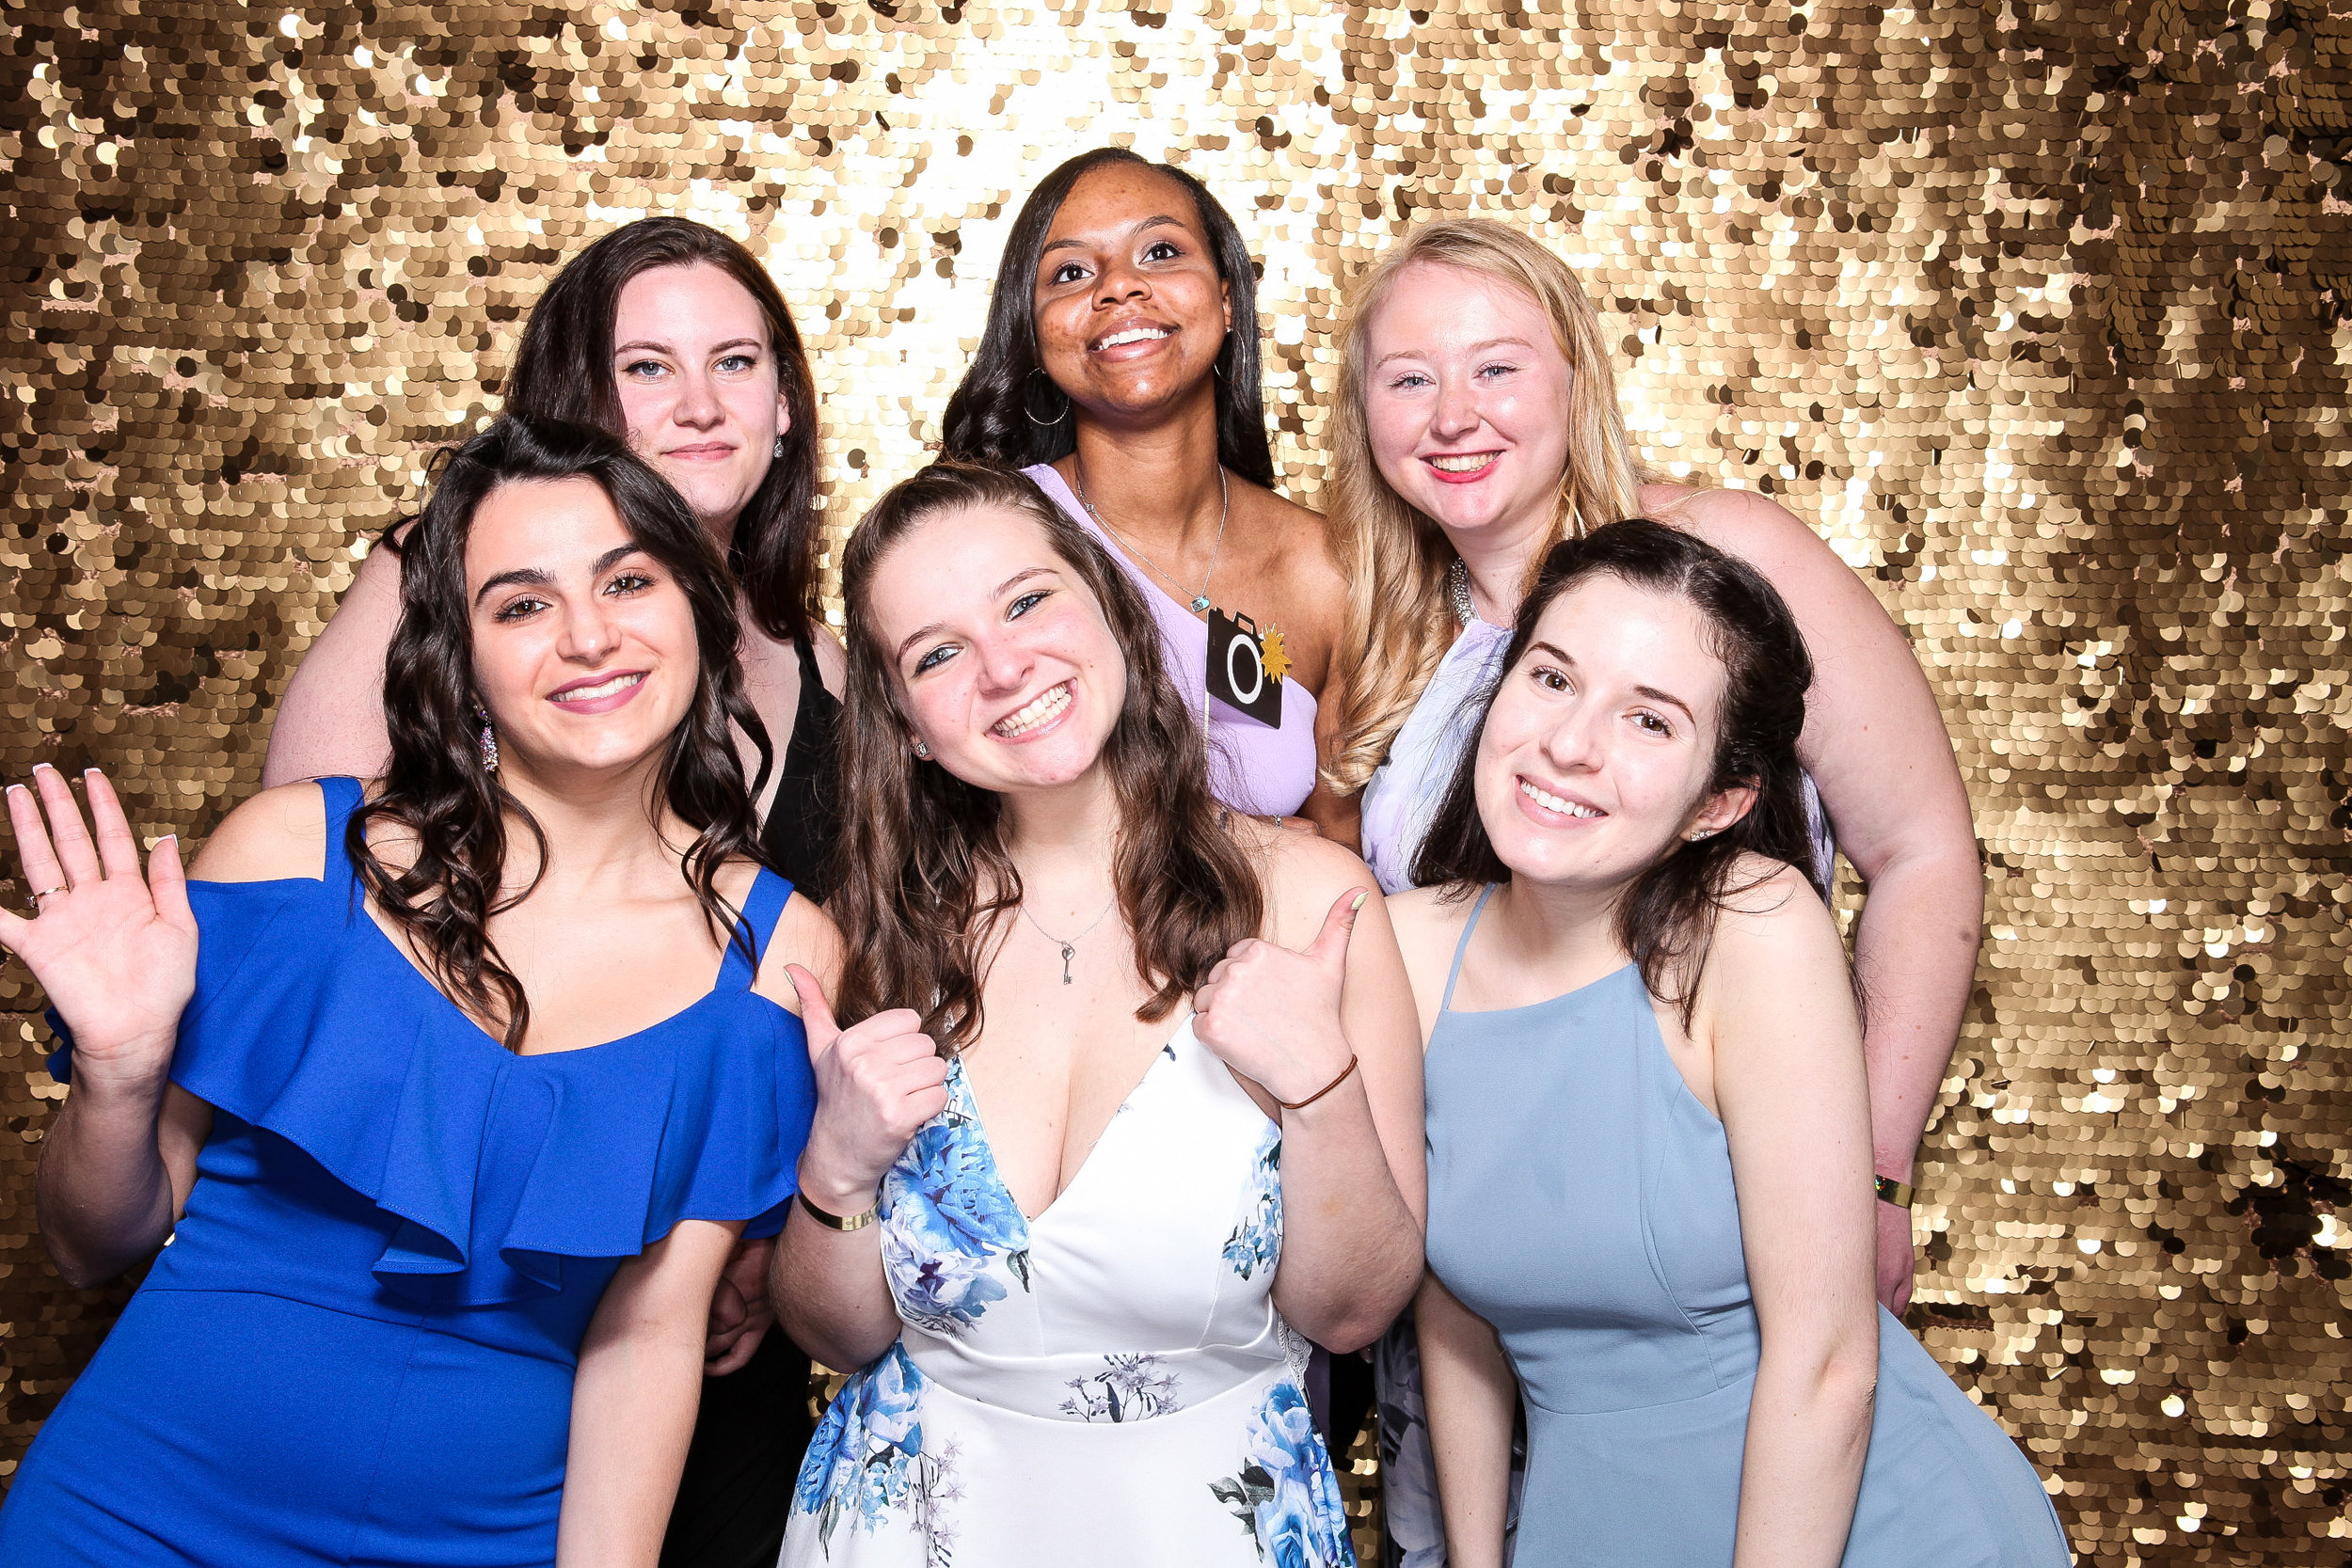 20190503_Adelphi_Senior_Formal-031.jpg